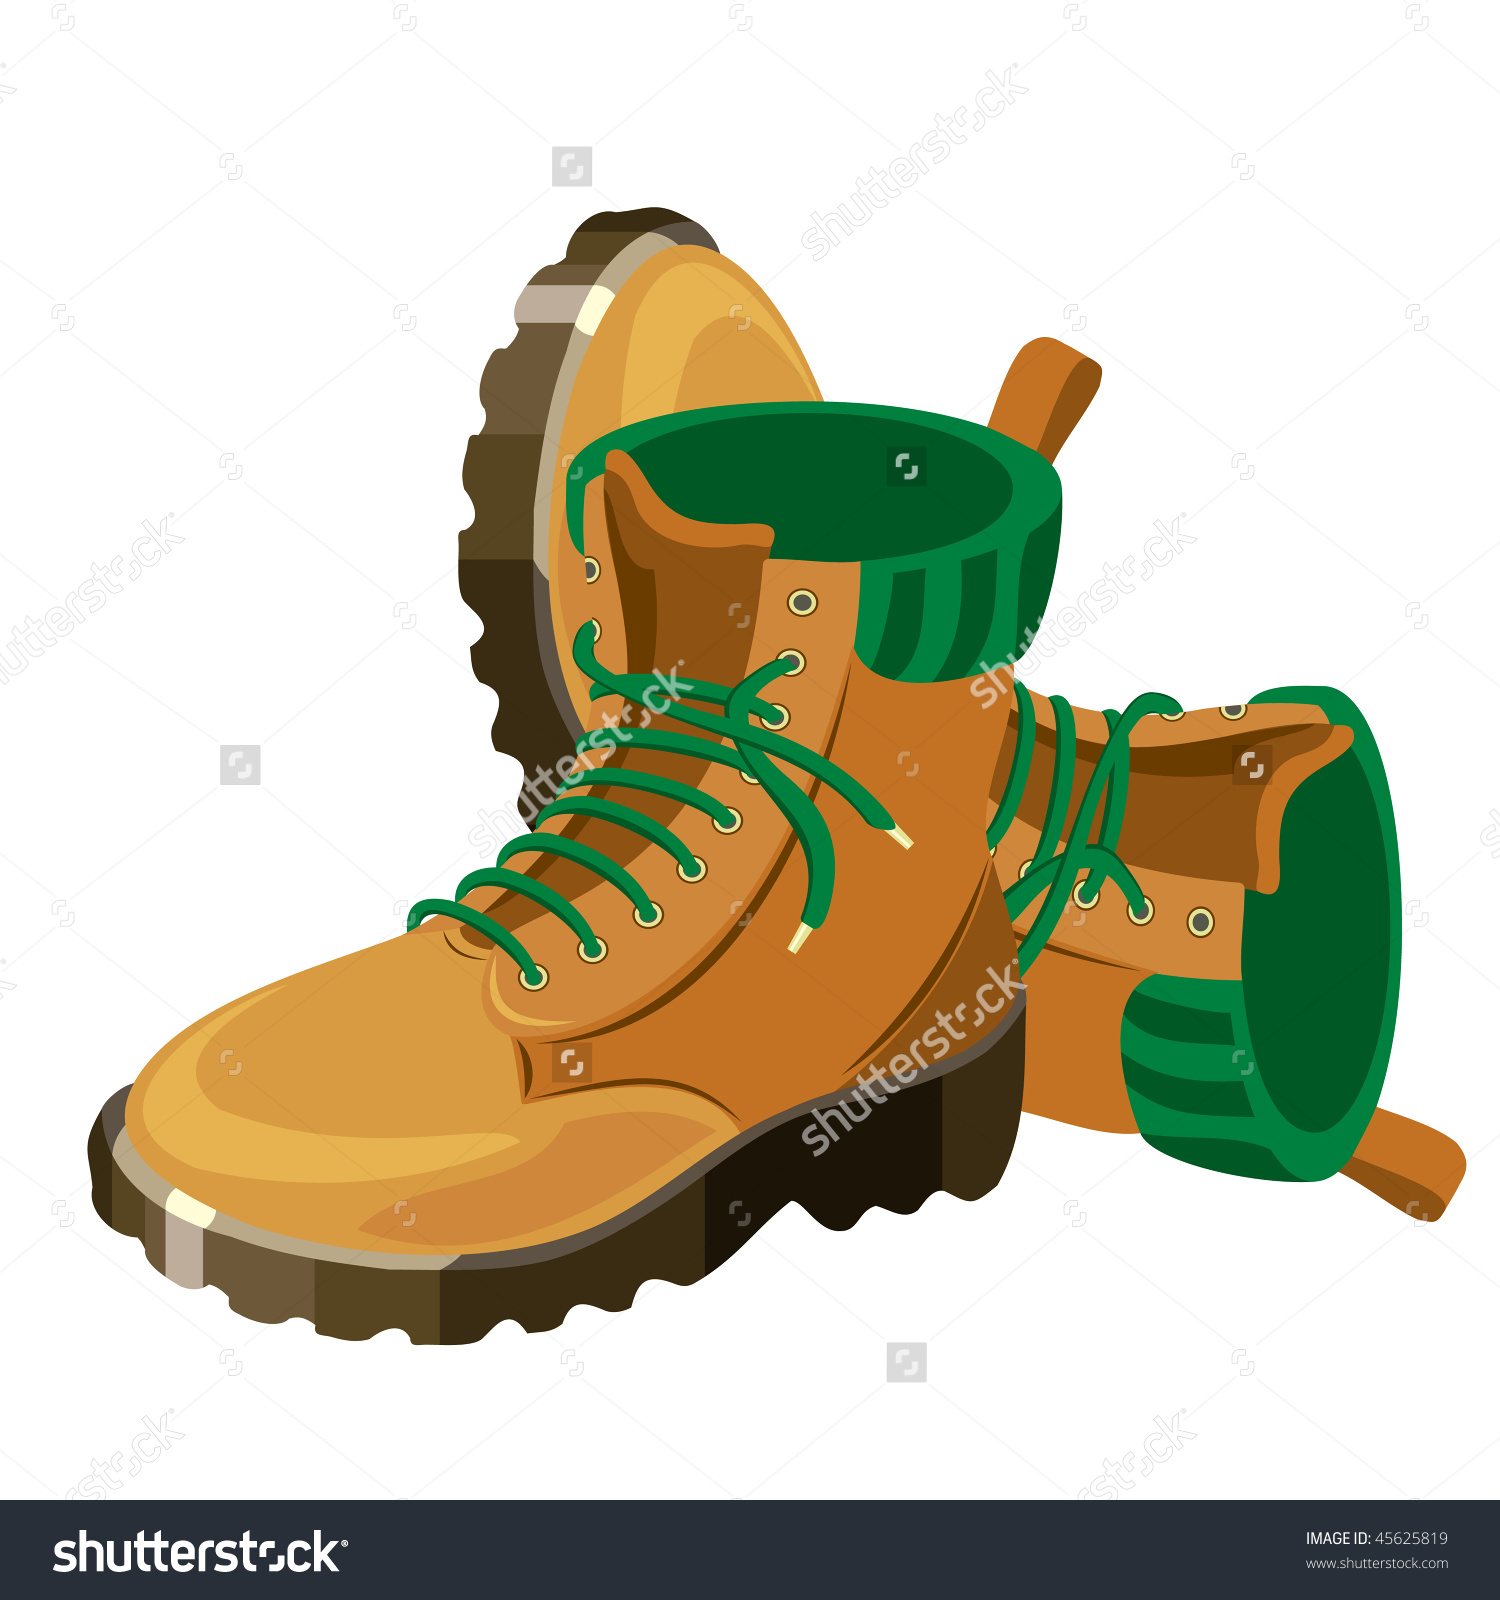 Hiking Shoes Clip Art.